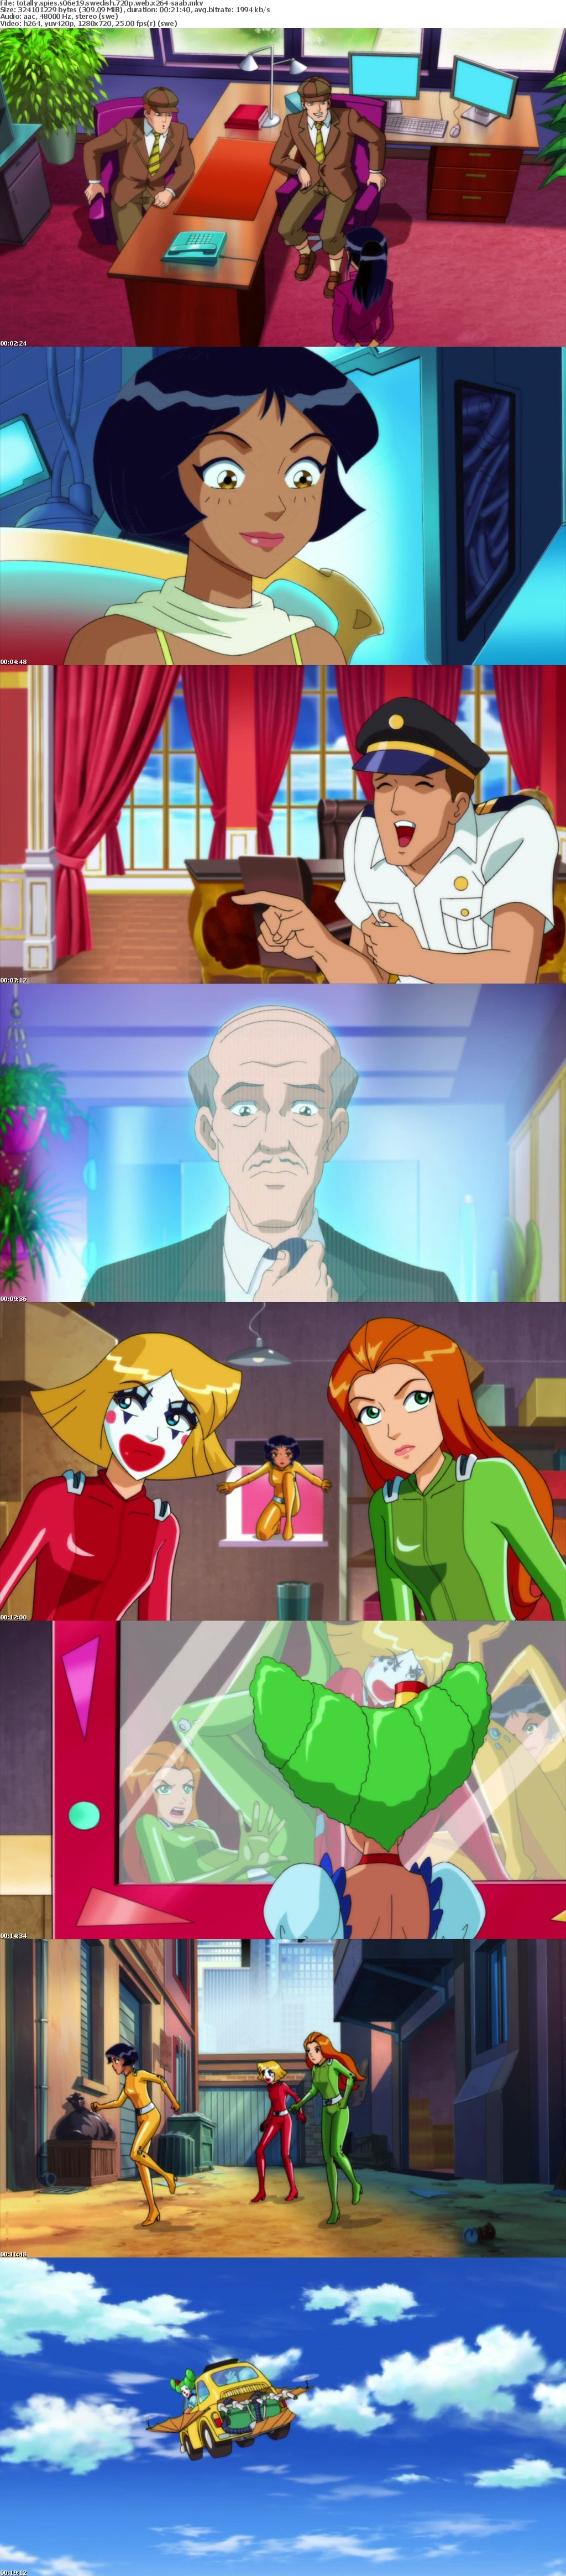 Totally Spies Swedish